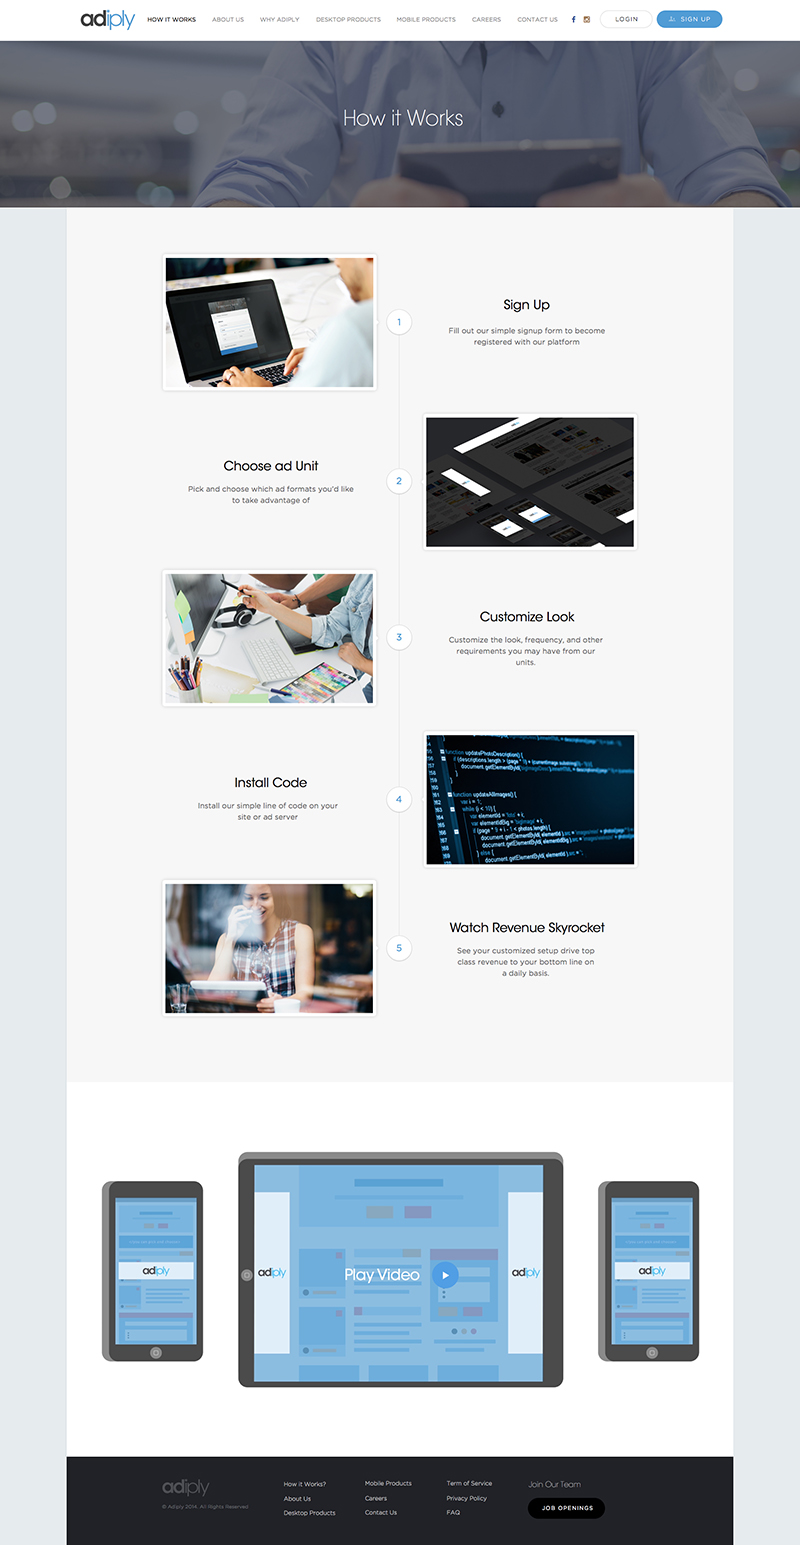 adiply Web Design